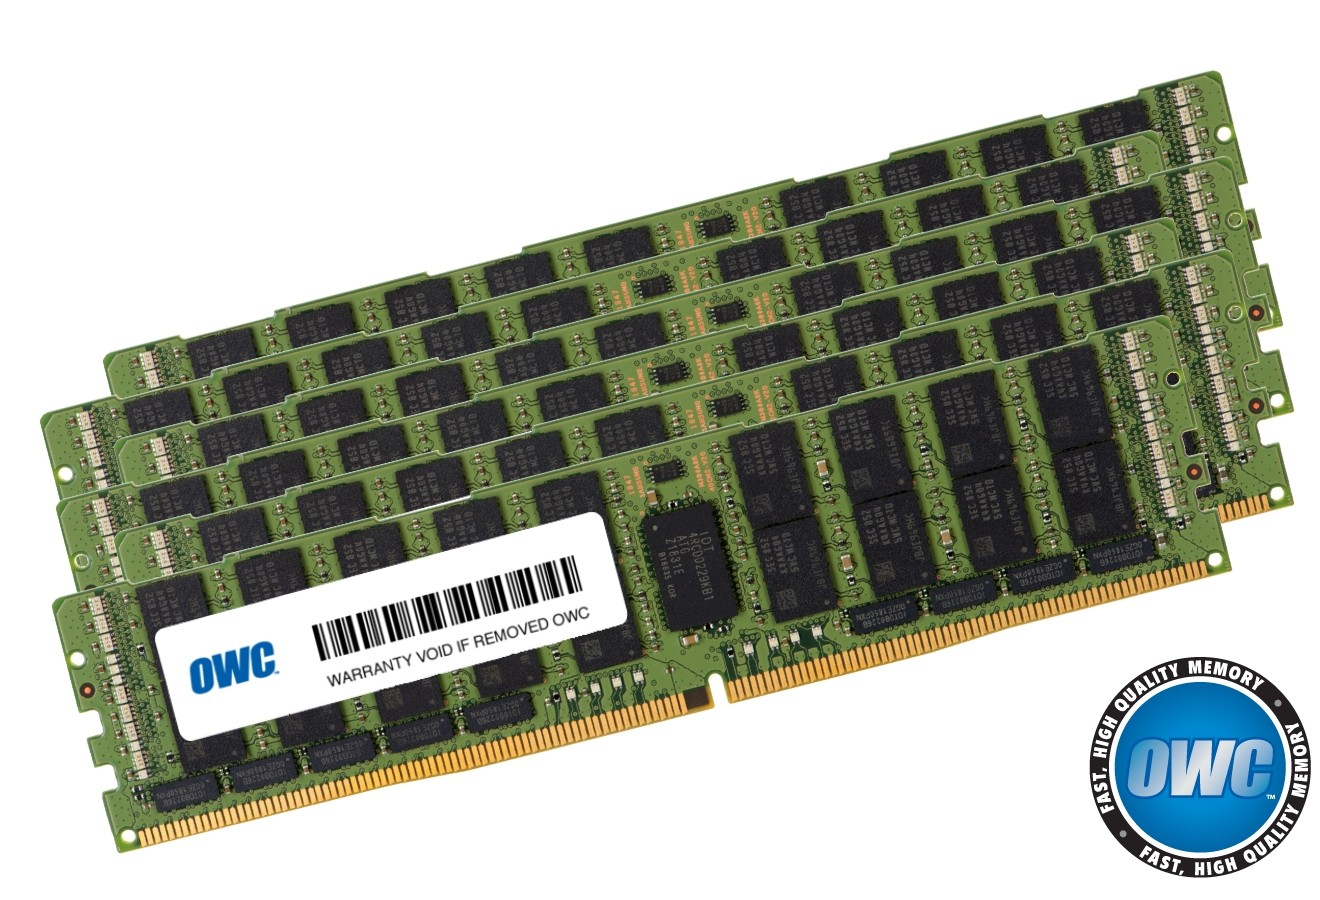 192.0GB (6 x 32GB) PC21300 DDR4 ECC 2666MHz 288-pin RDIMM Memory Upgrade Kit, OWC2666R3M192